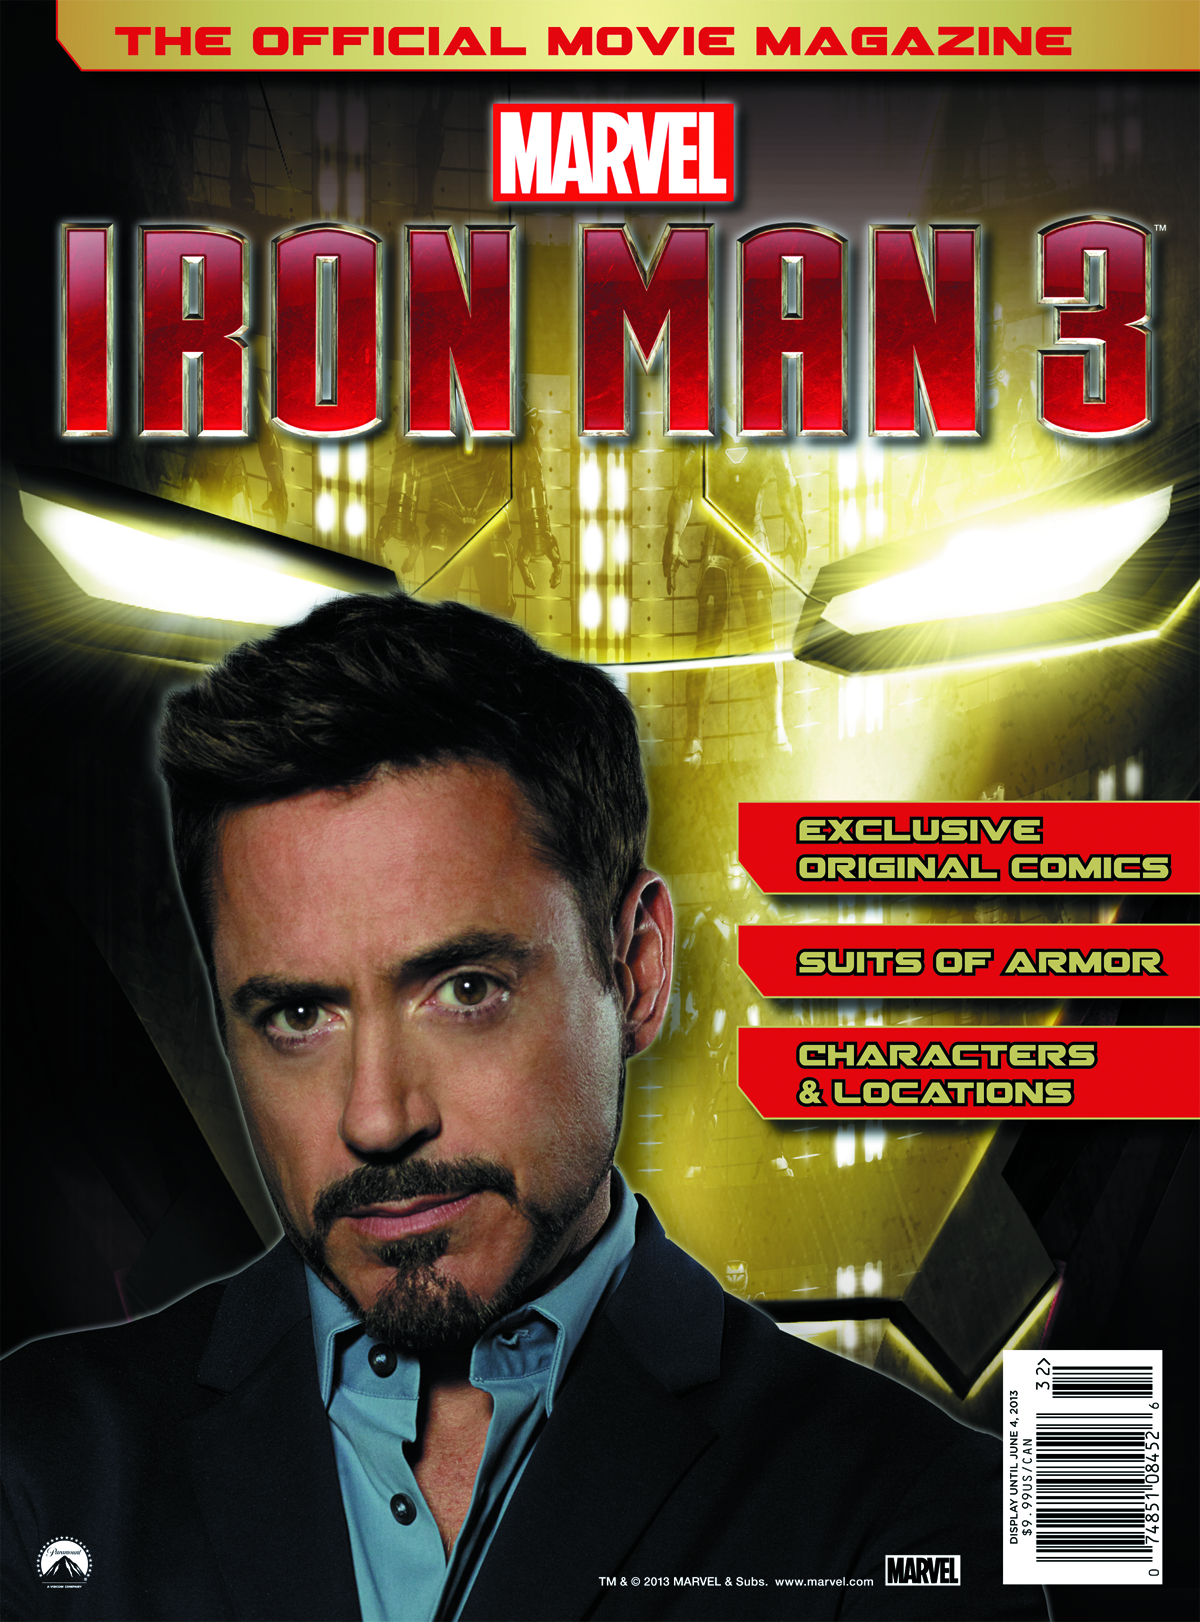 OFFICIAL MOVIE MAGAZINE MARVEL IRON MAN 3